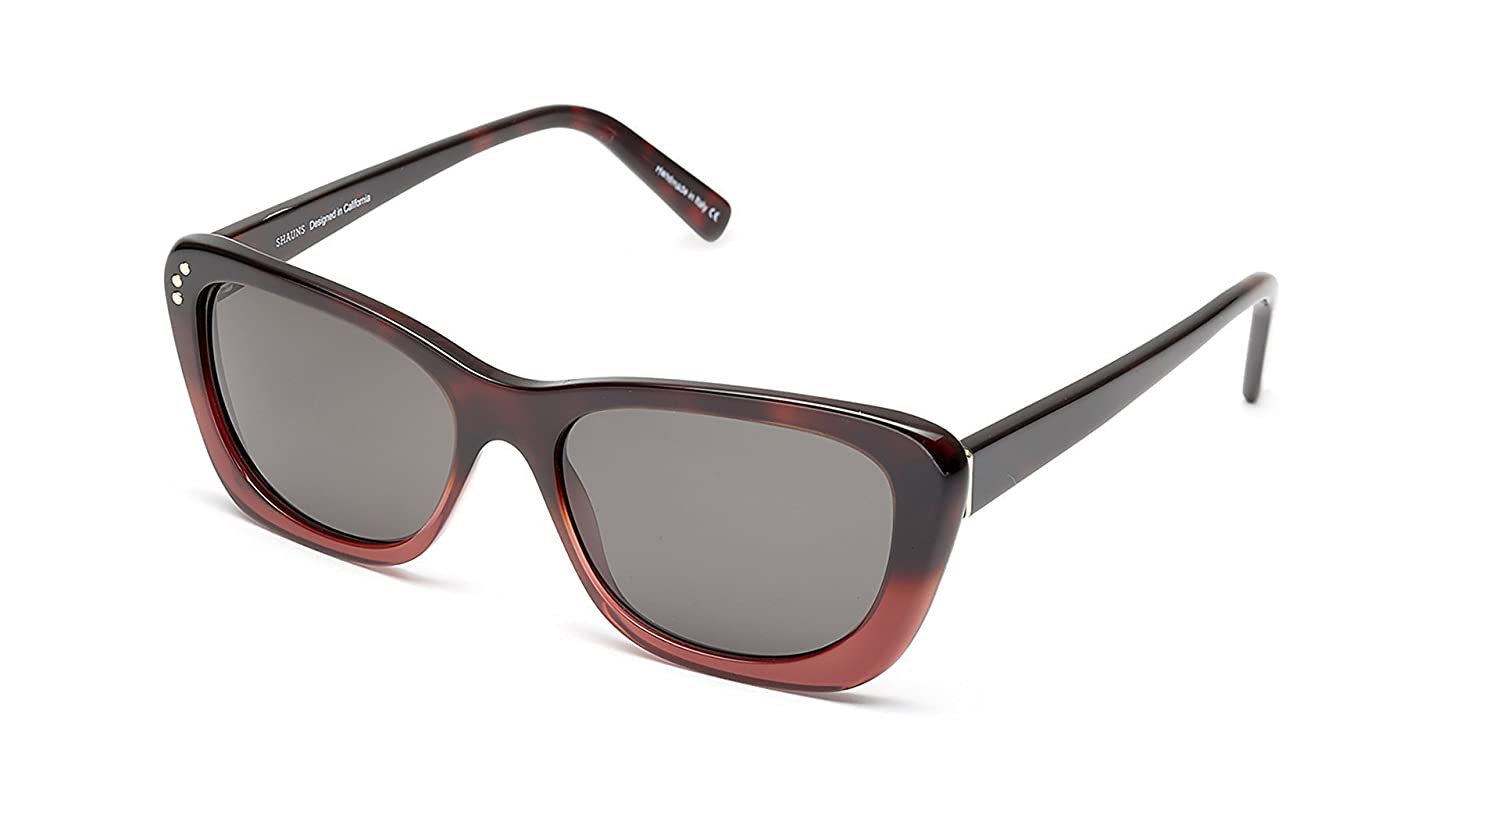 SHAUNS California ACCESSORY レディース B078KZ7FCW Black Cherry/Smoke Lens Black Cherry/Smoke Lens